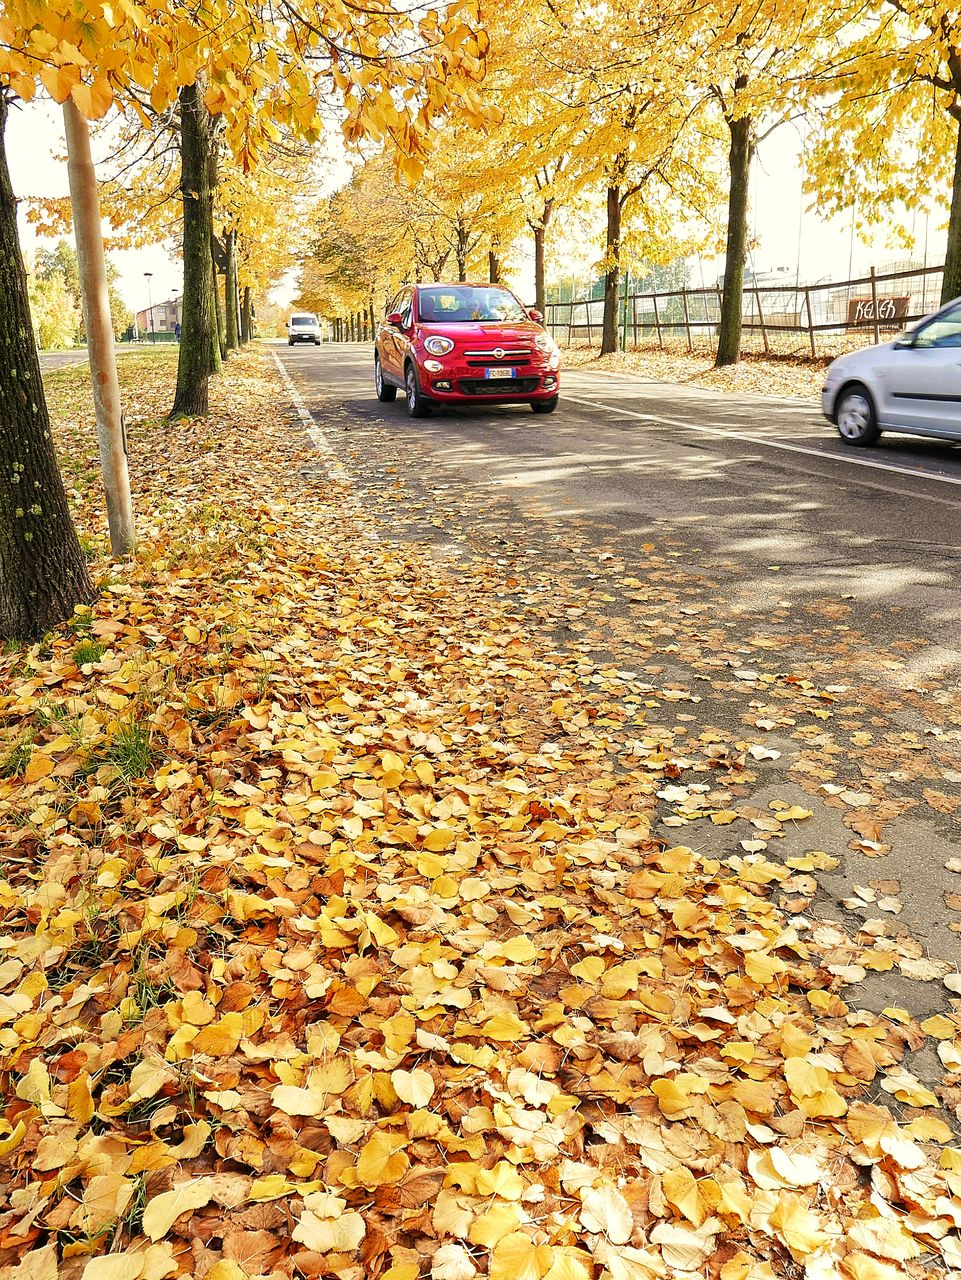 change, autumn, leaf, car, tree, land vehicle, transportation, mode of transport, fallen, dry, nature, outdoors, day, stationary, beauty in nature, no people, red, yellow